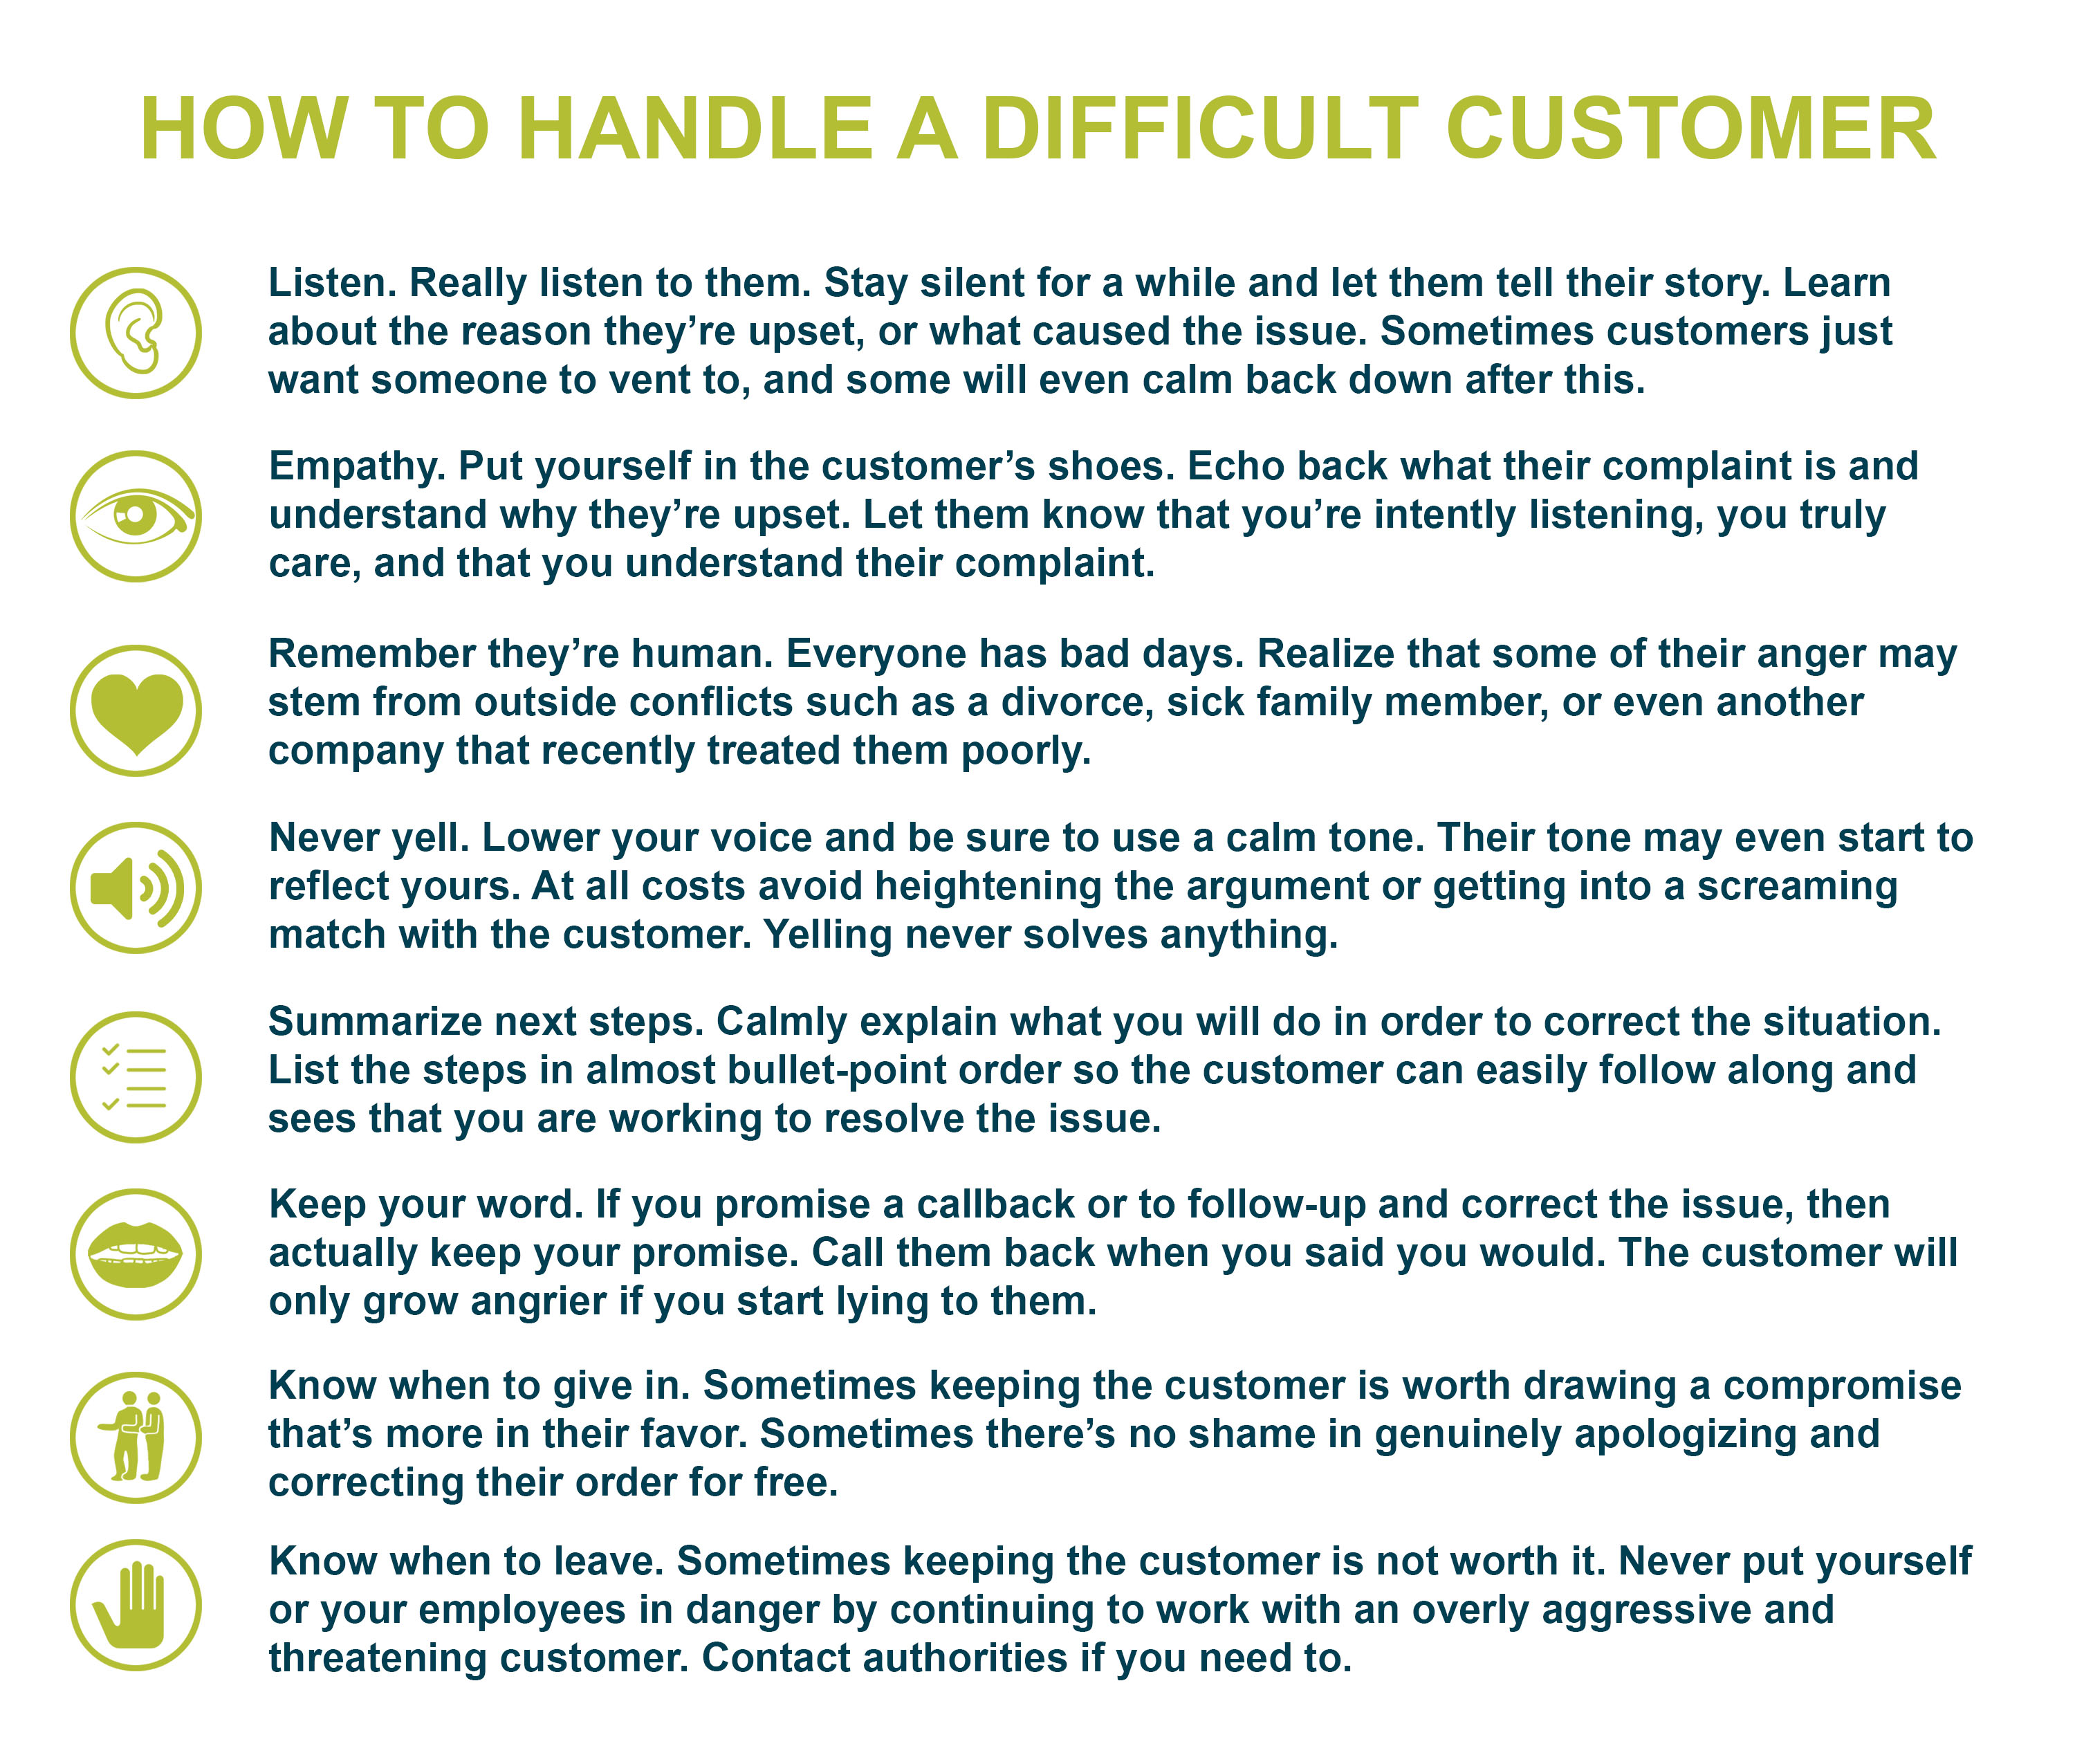 graphic describing how to handle a difficult customer